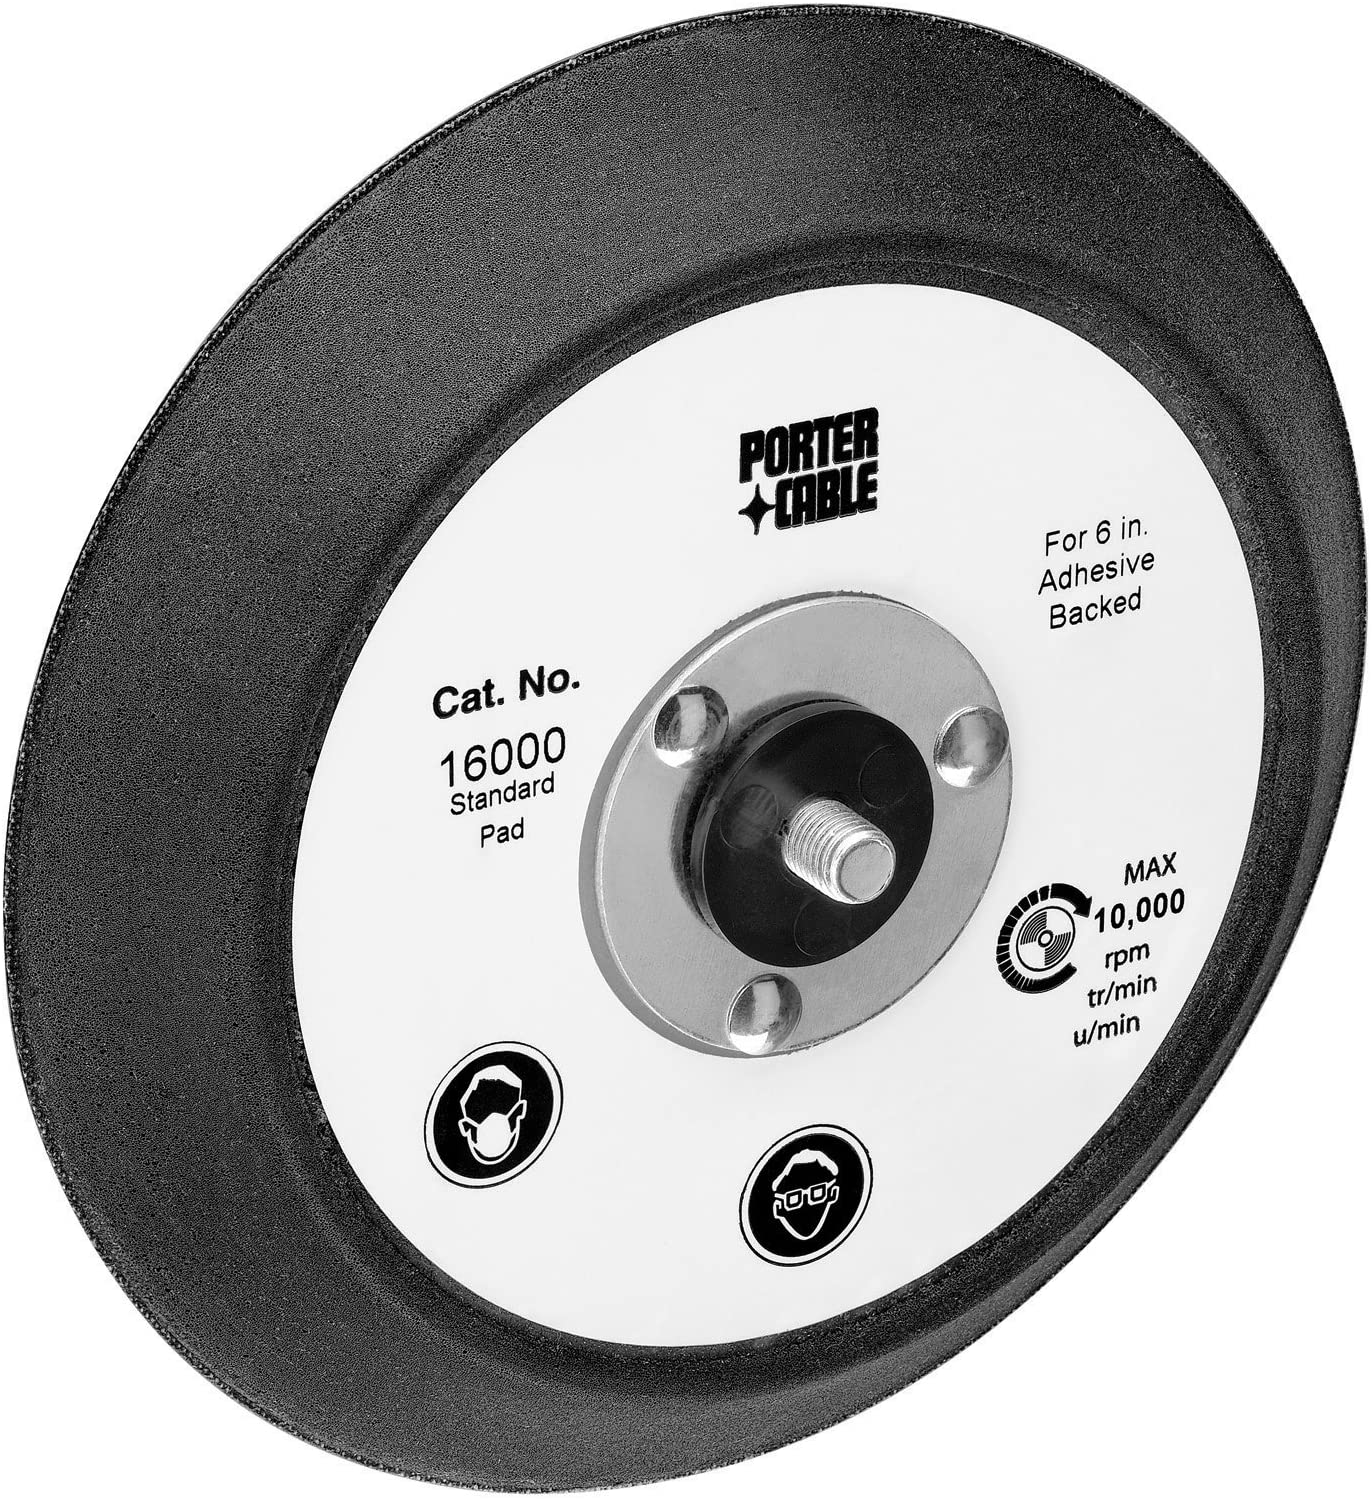 PORTER-CABLE 16000 6 In Standard Pad for 7336 and 97366 Random Orbit Sander - Power Sander Accessories -